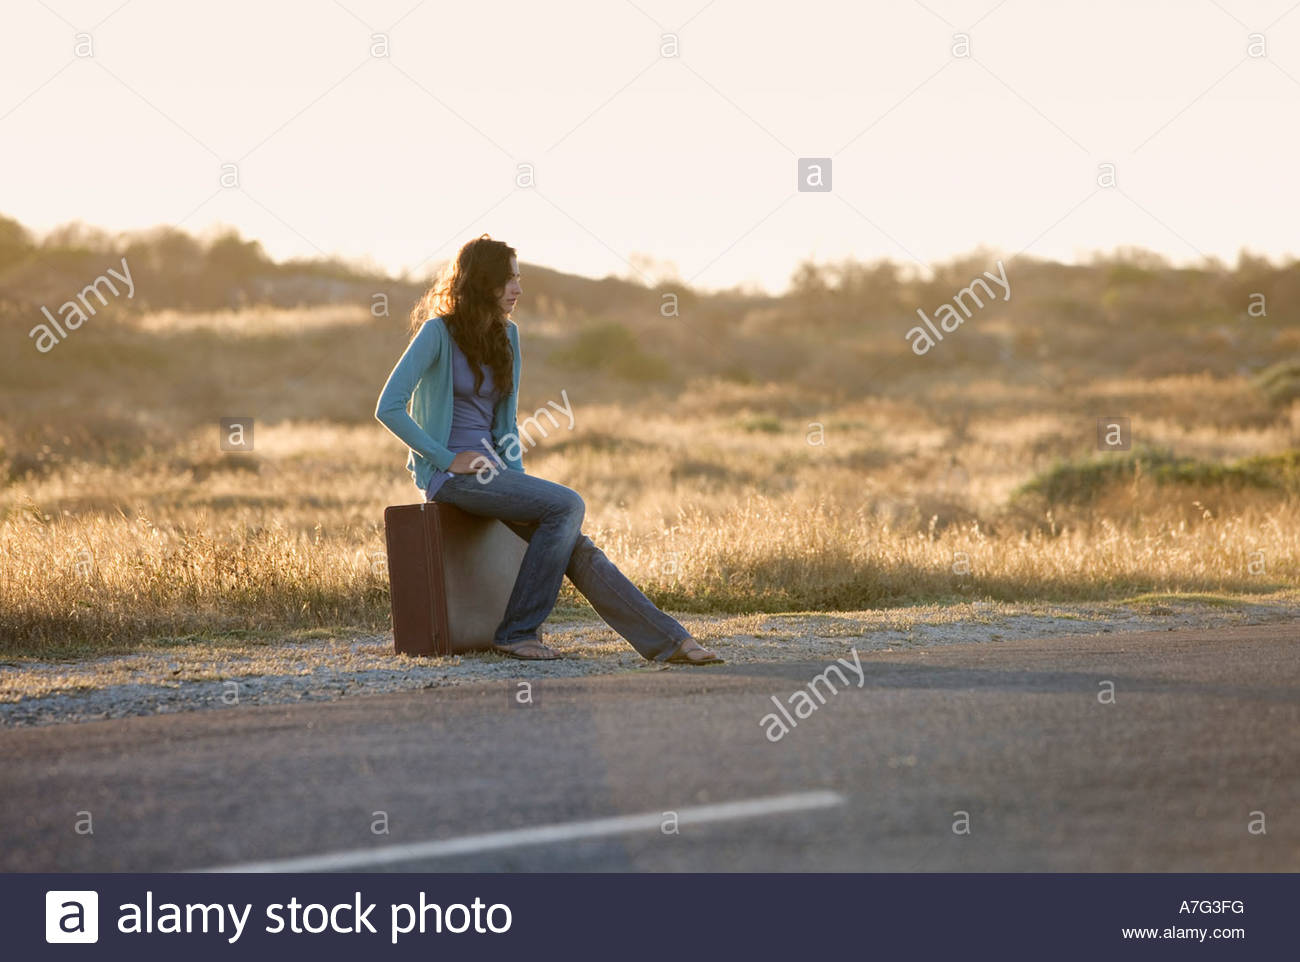 A woman with a suitcase hitching a lift - Stock Image